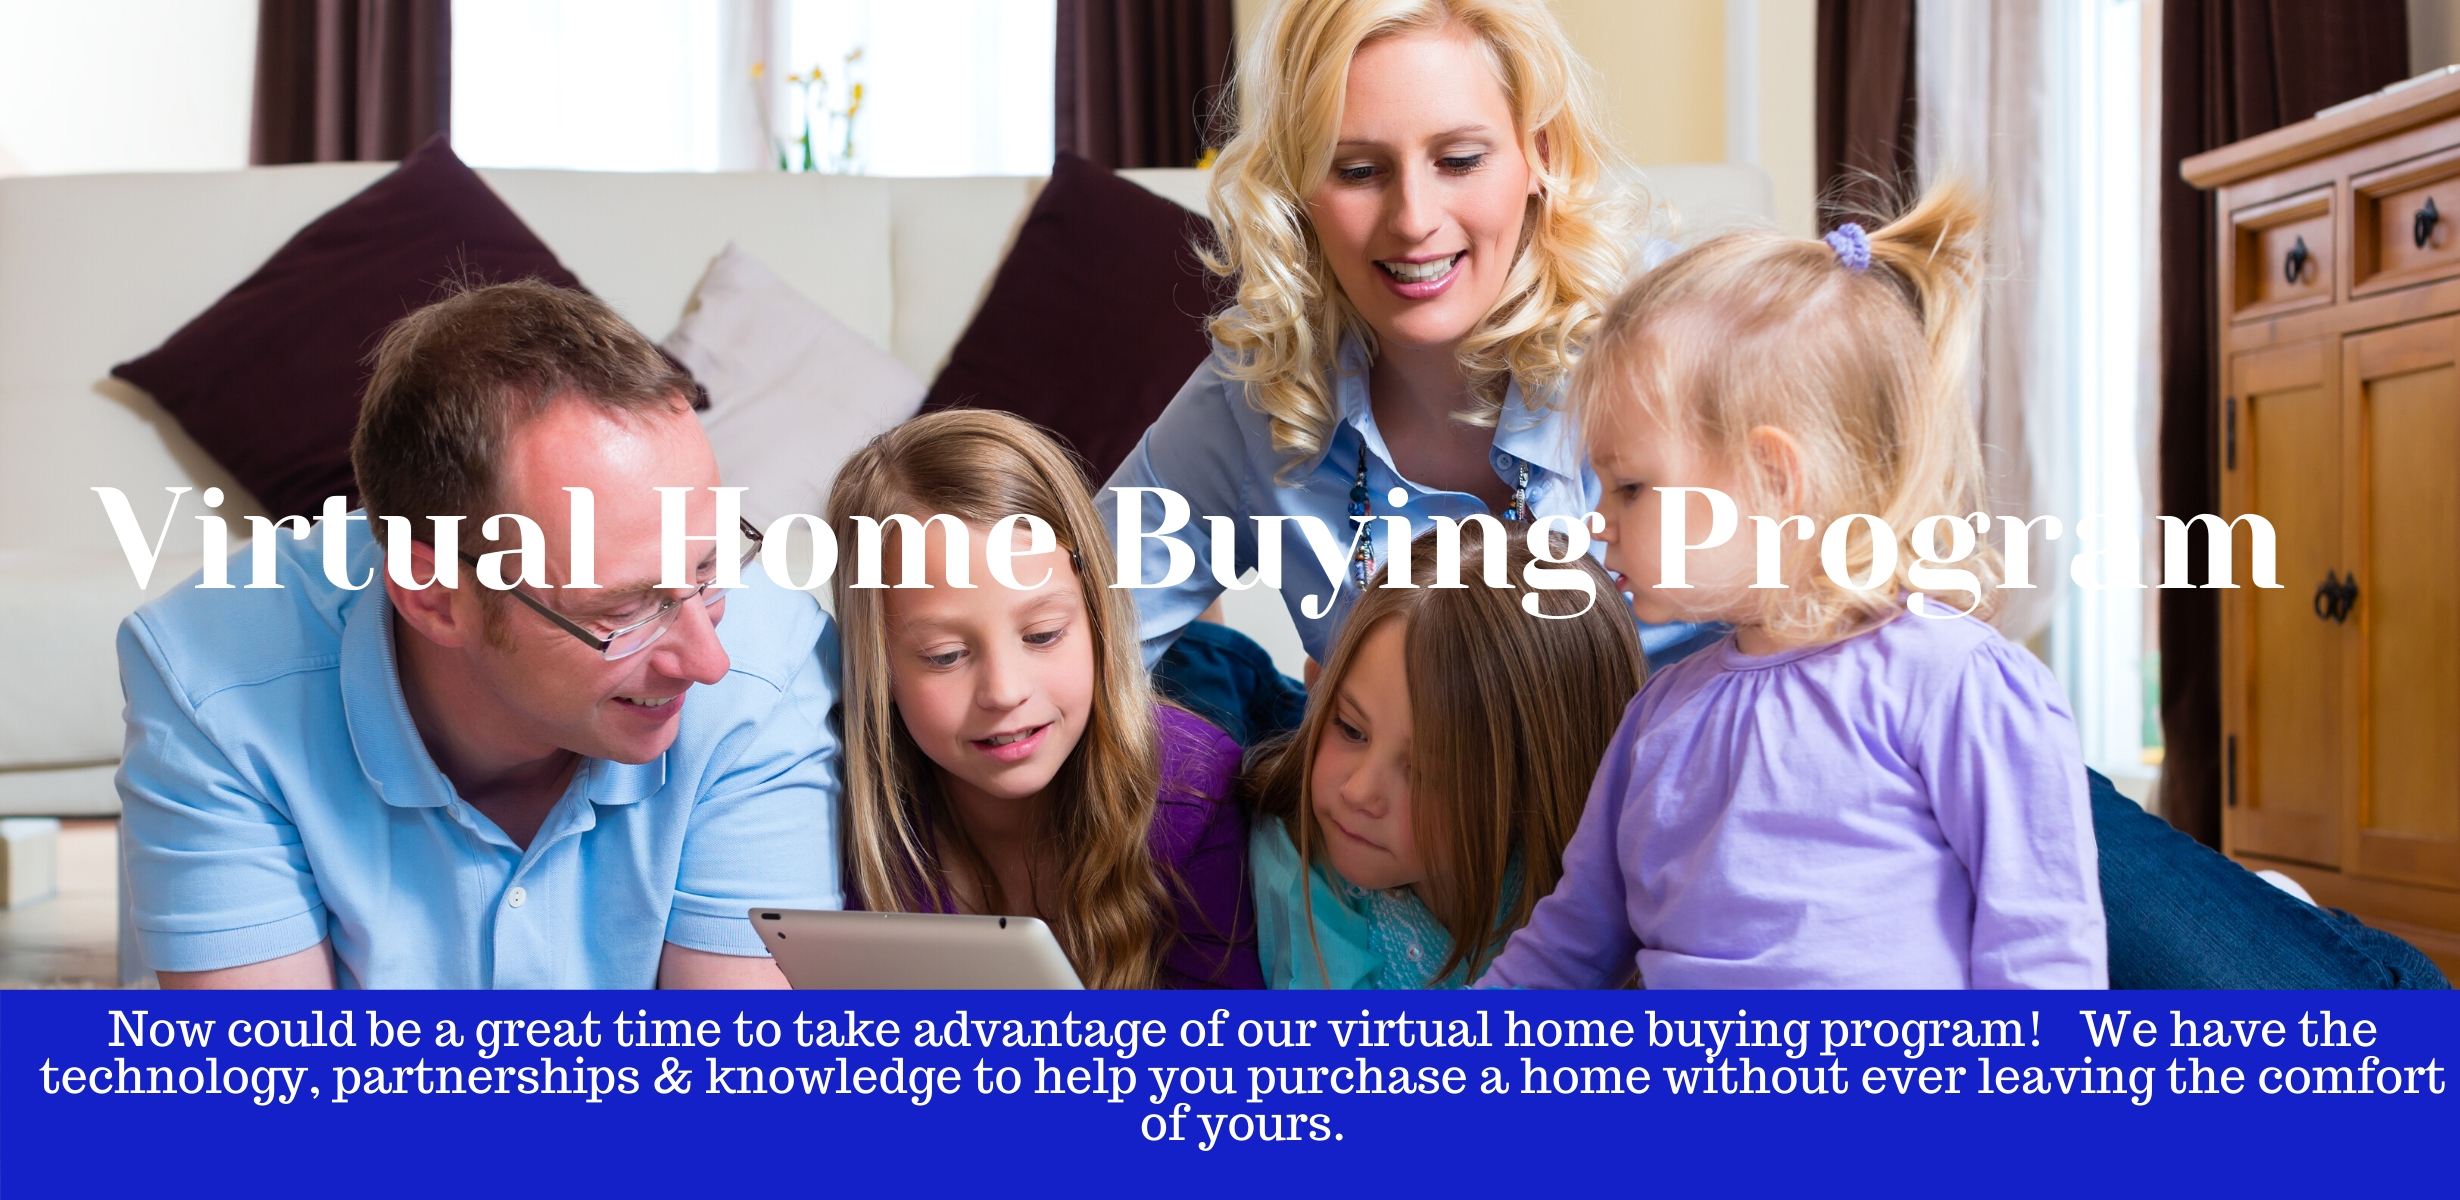 Virtual Home Buying Program w writing.jpg